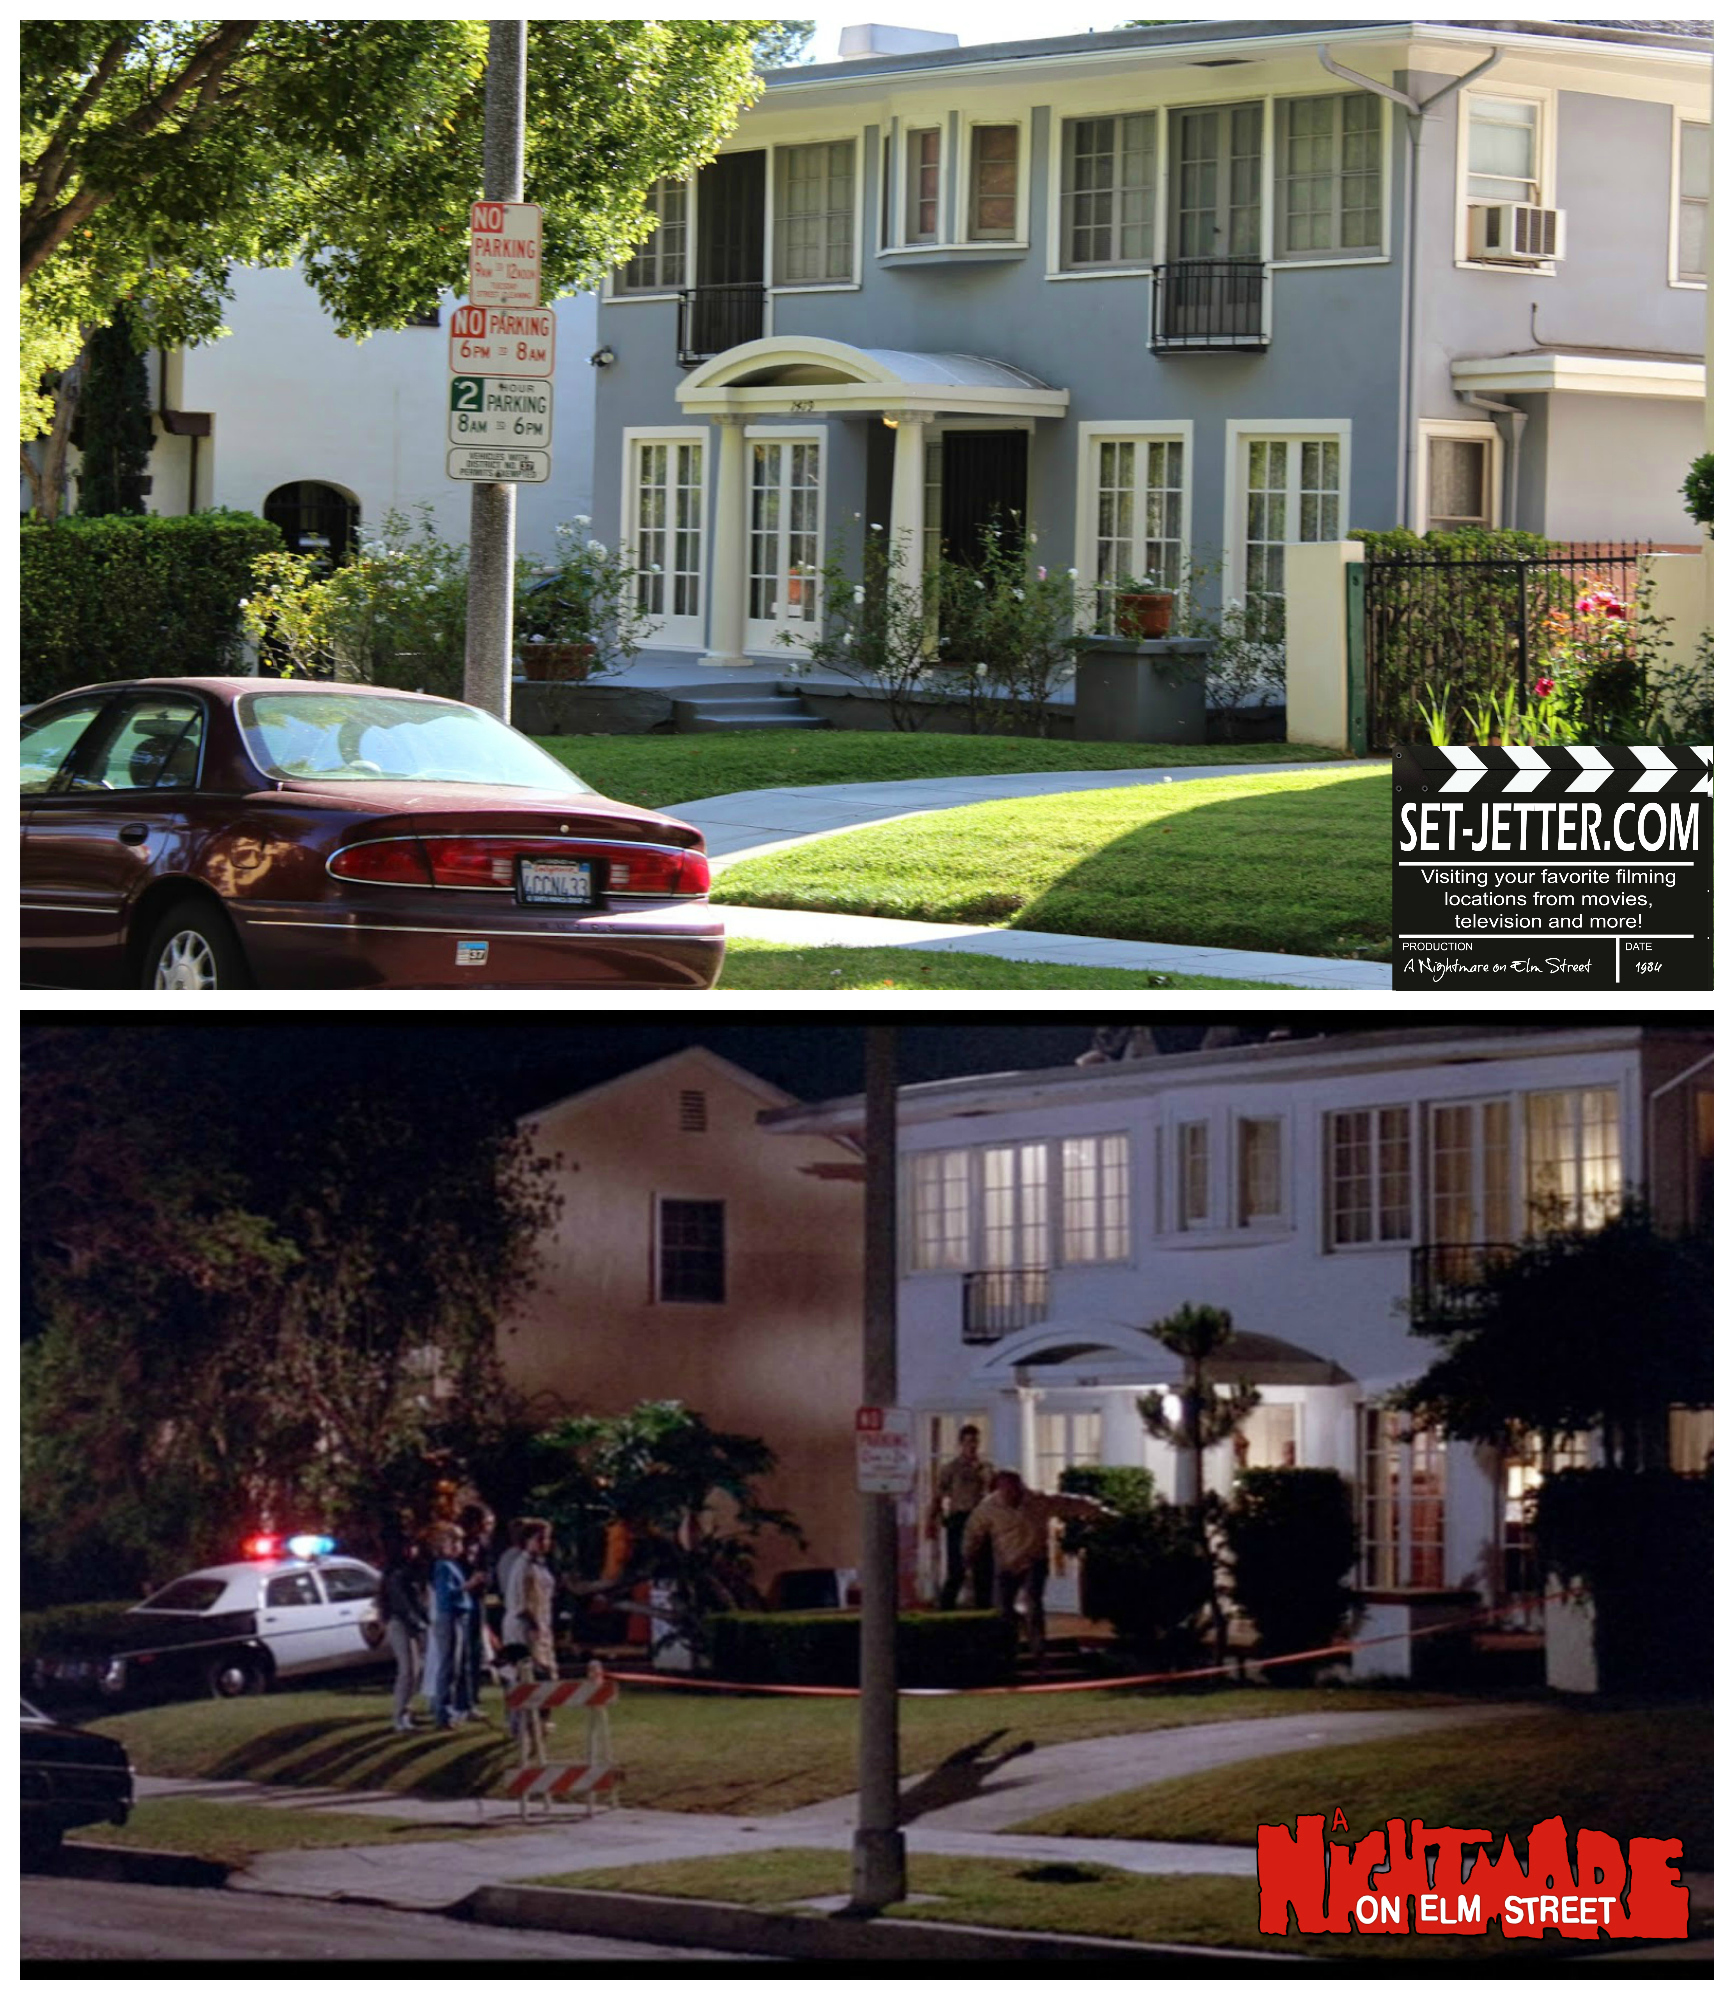 Nightmare on Elm Street comparison 31.jpg